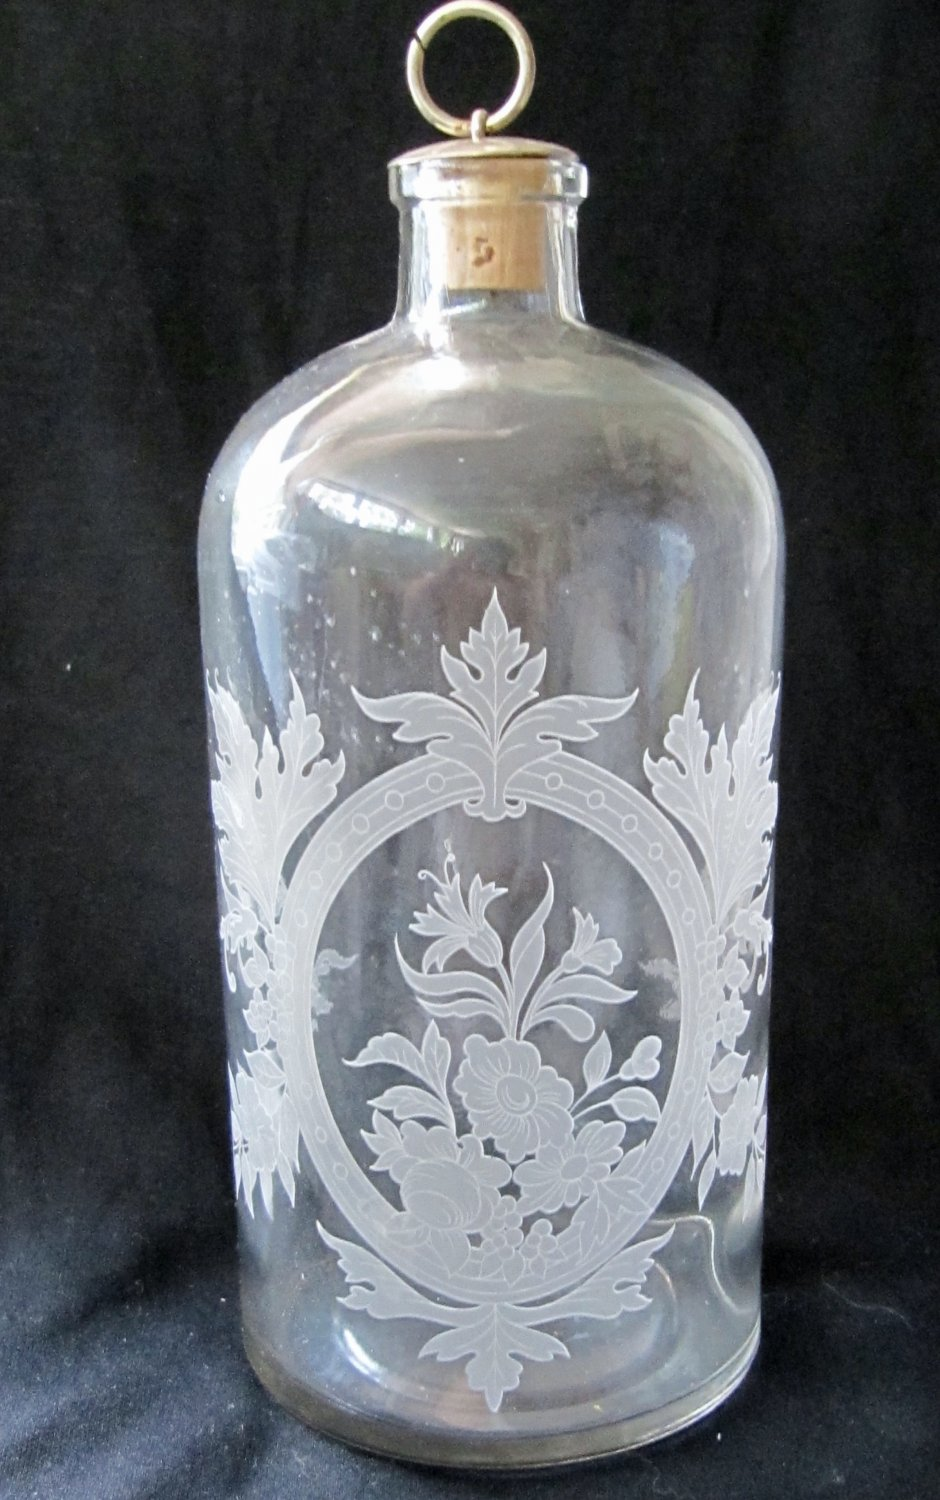 Vintage Etched Clear Glass Bottle with Stopper Floral Leaf Design 8-3/8 Inches